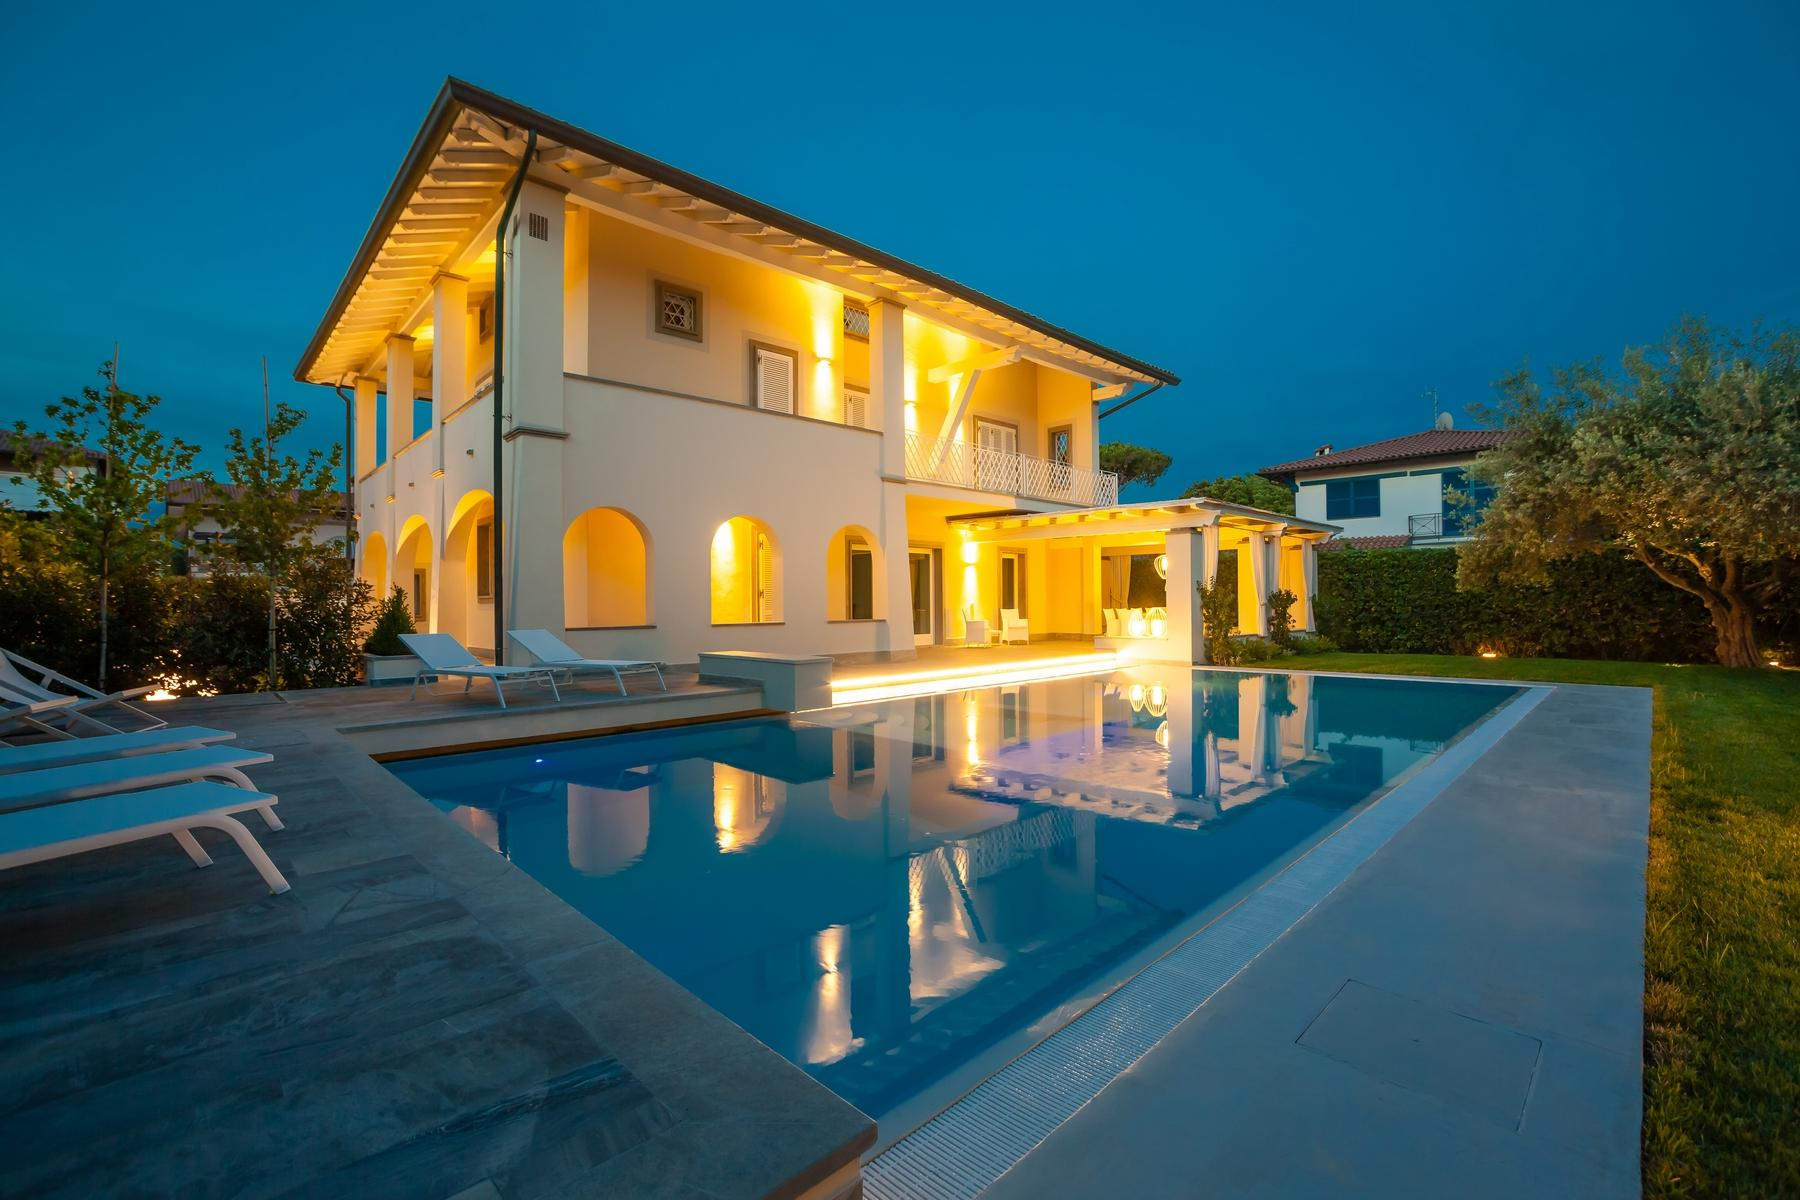 Splendid villa with swimming pool in Forte dei Marmi - 19